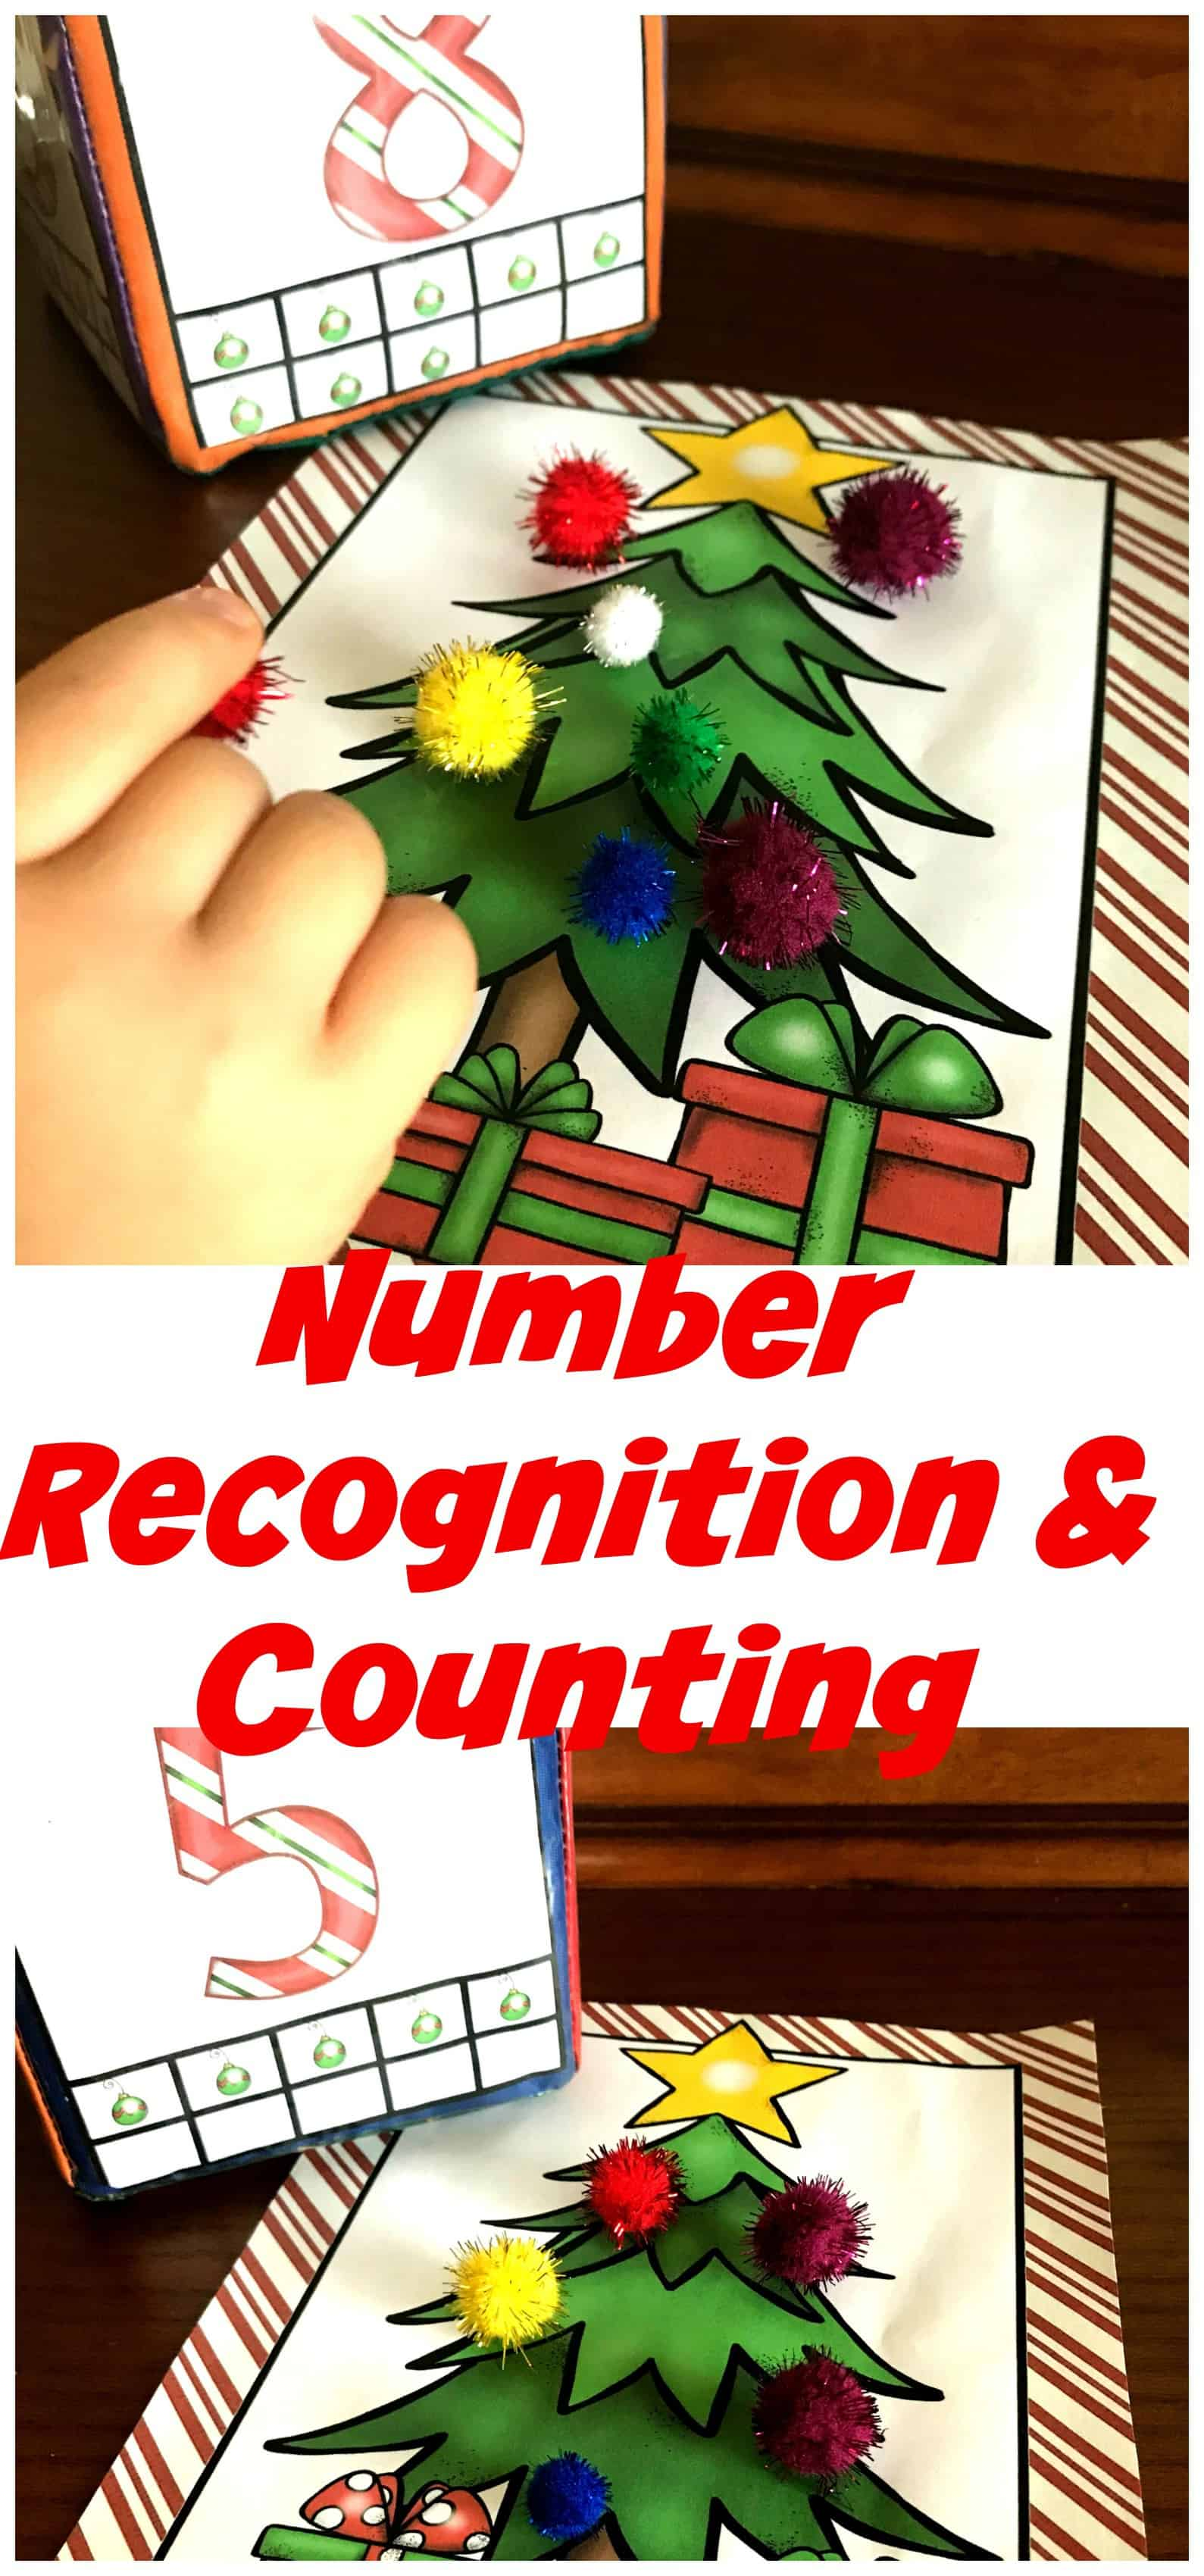 Grab this FREE Christmas themed counting activity for preschoolers. It is a fun hands-on way to work on numbers recognition and one to one correspondence.